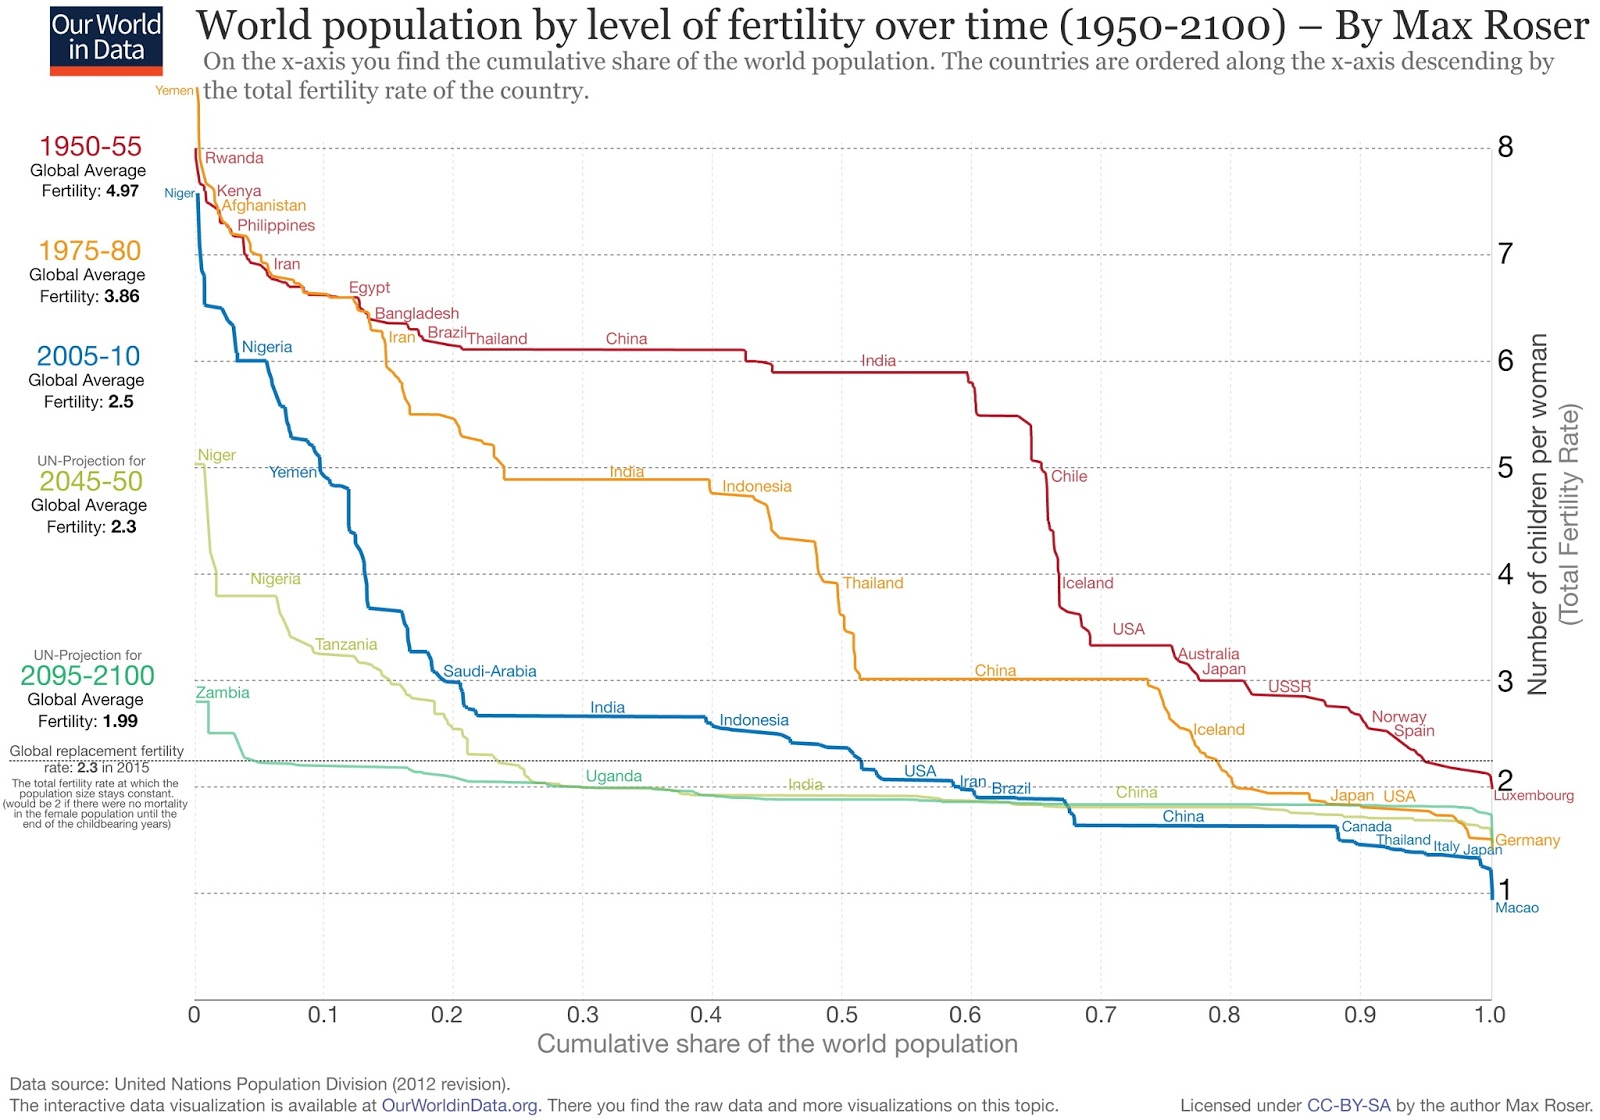 World population by level of fertiliy over time